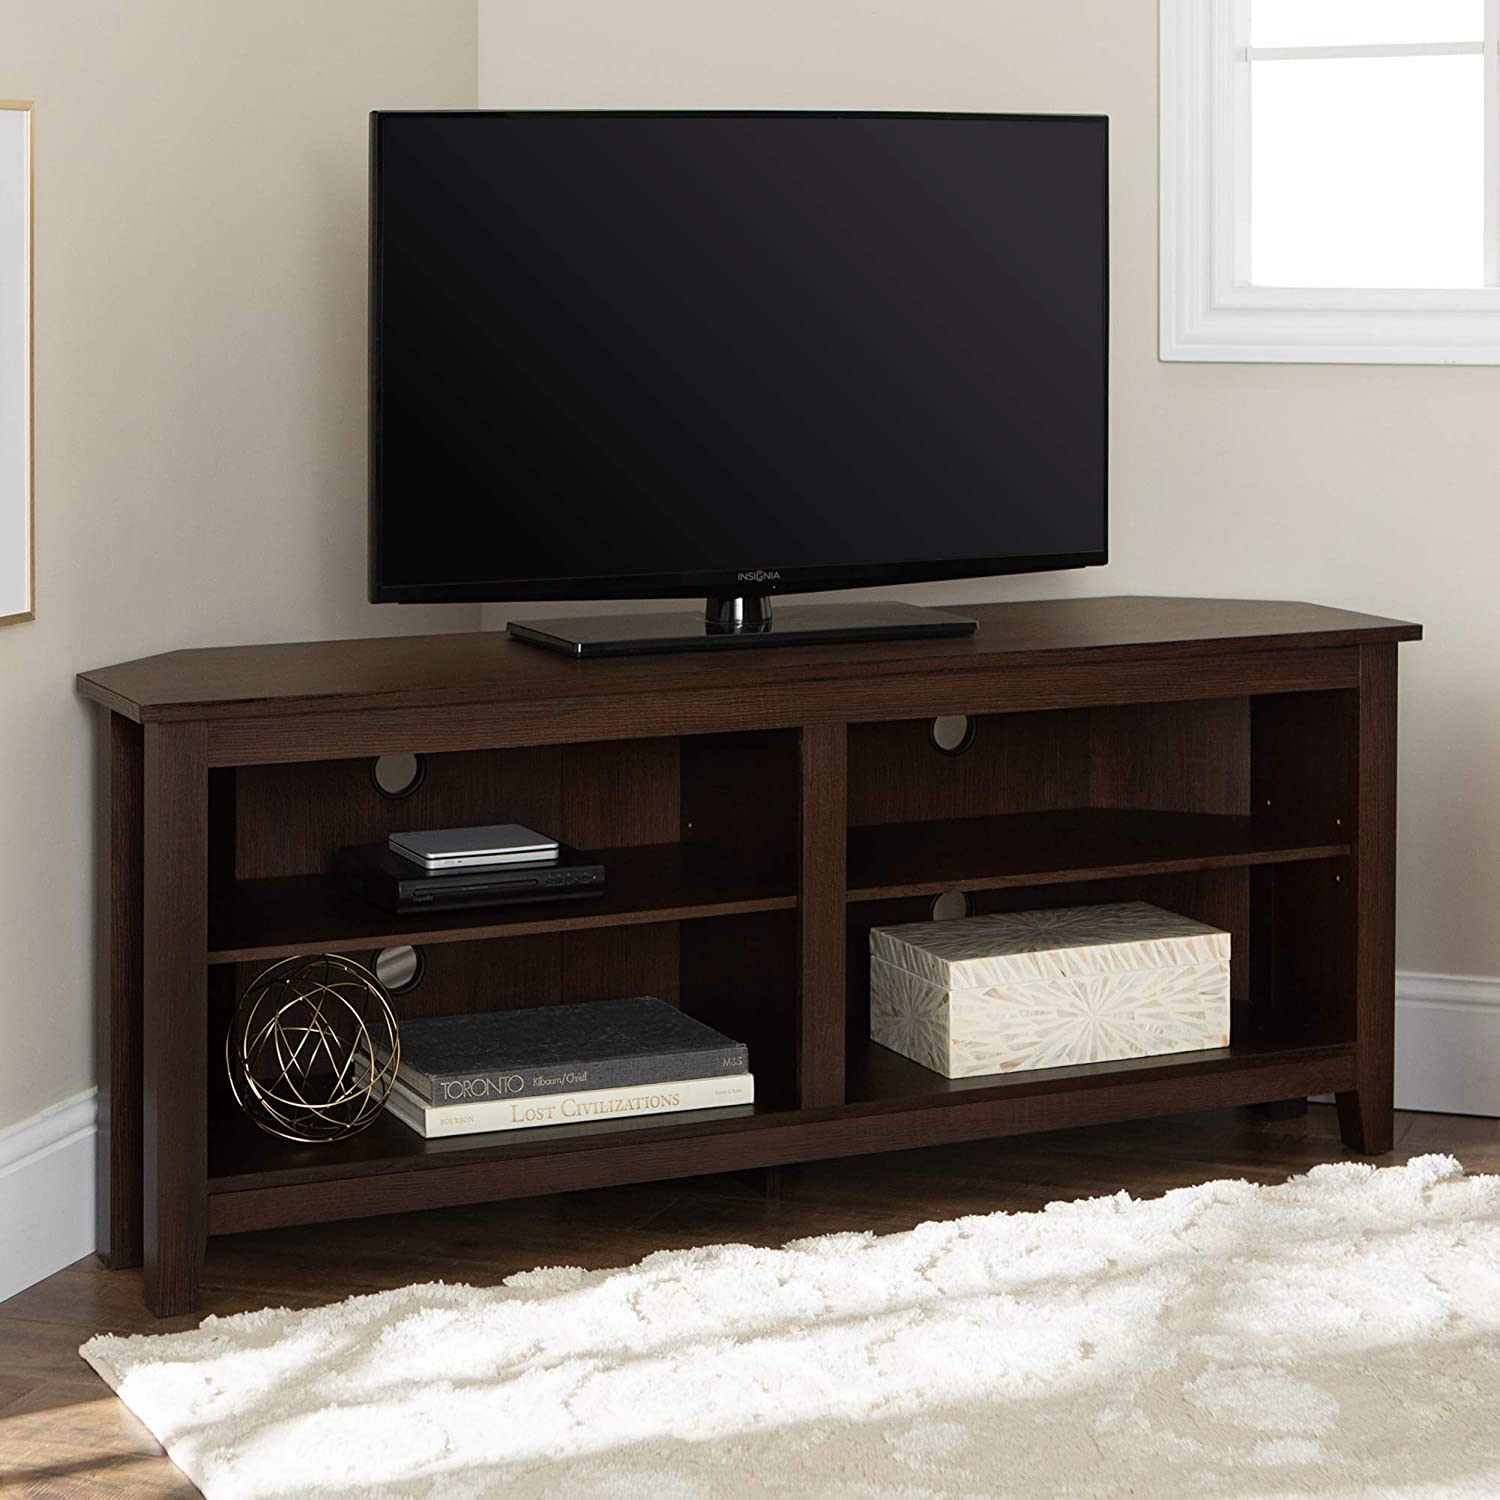 WE Furniture Simple Farmhouse Wood Stand with Storage Cabinets for TV s up to 56 Living Room, 58 Inch, Espresso